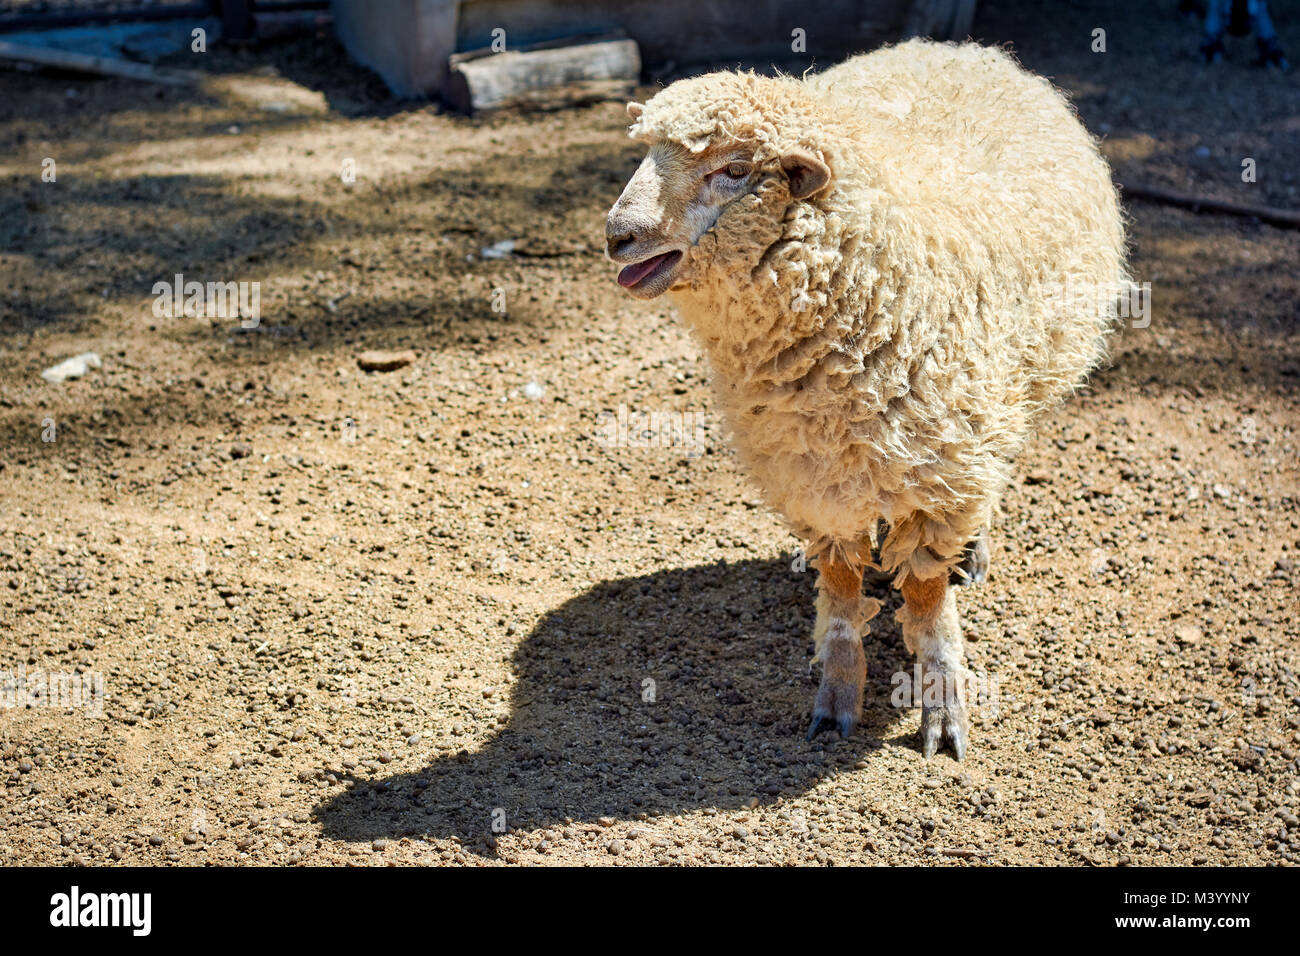 Sheep bleating in the corral on a farm - Stock Image